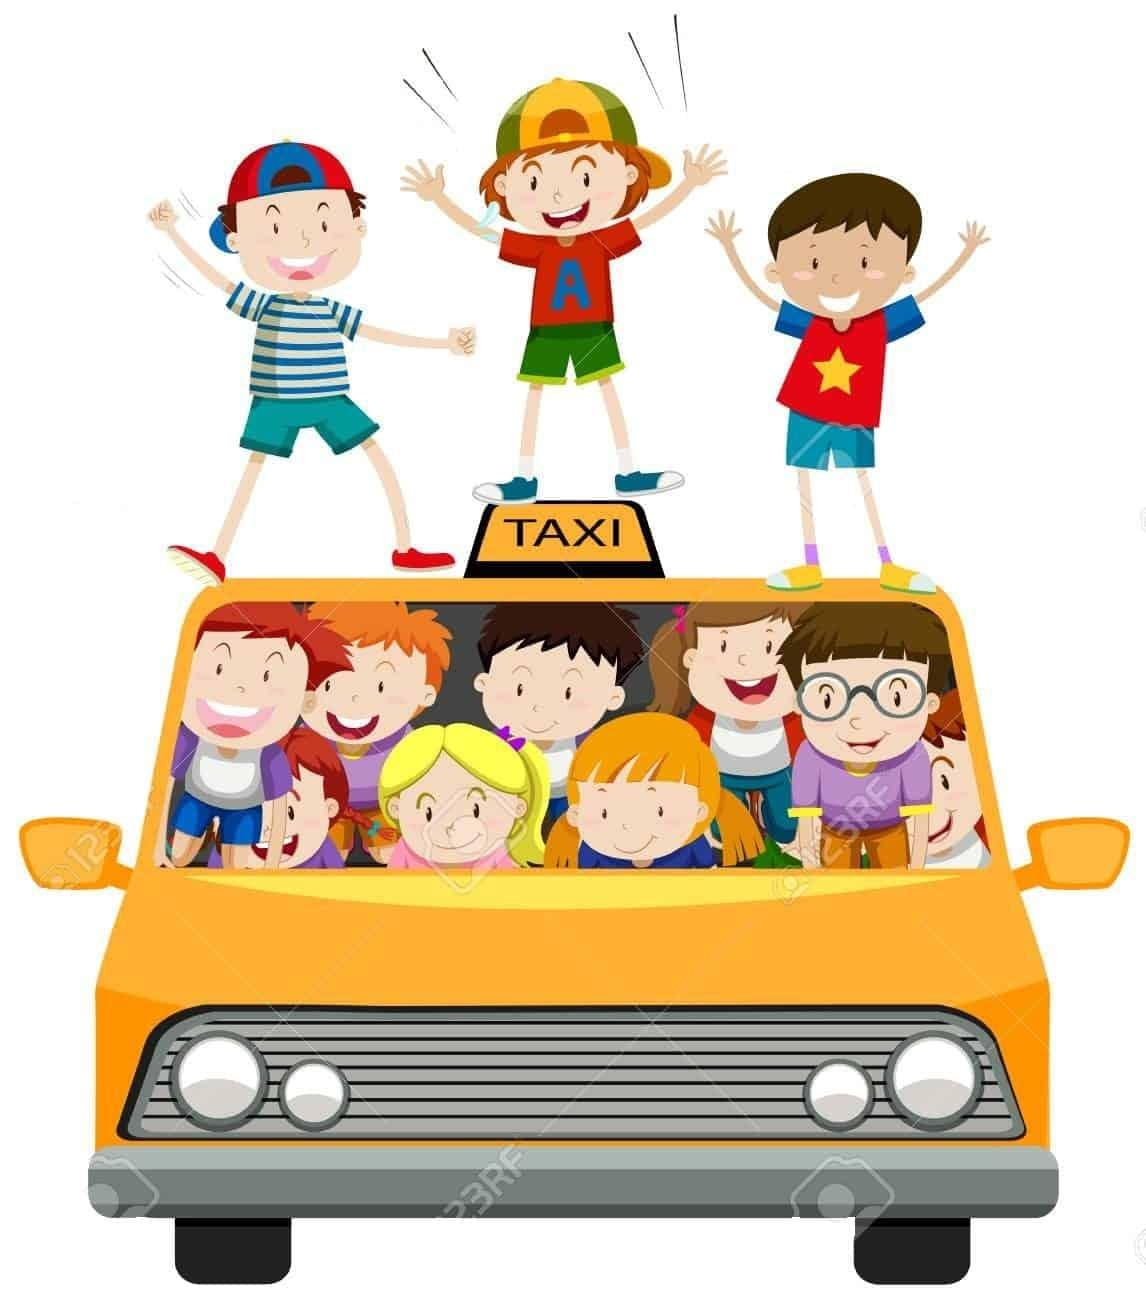 children-riding-on-taxi